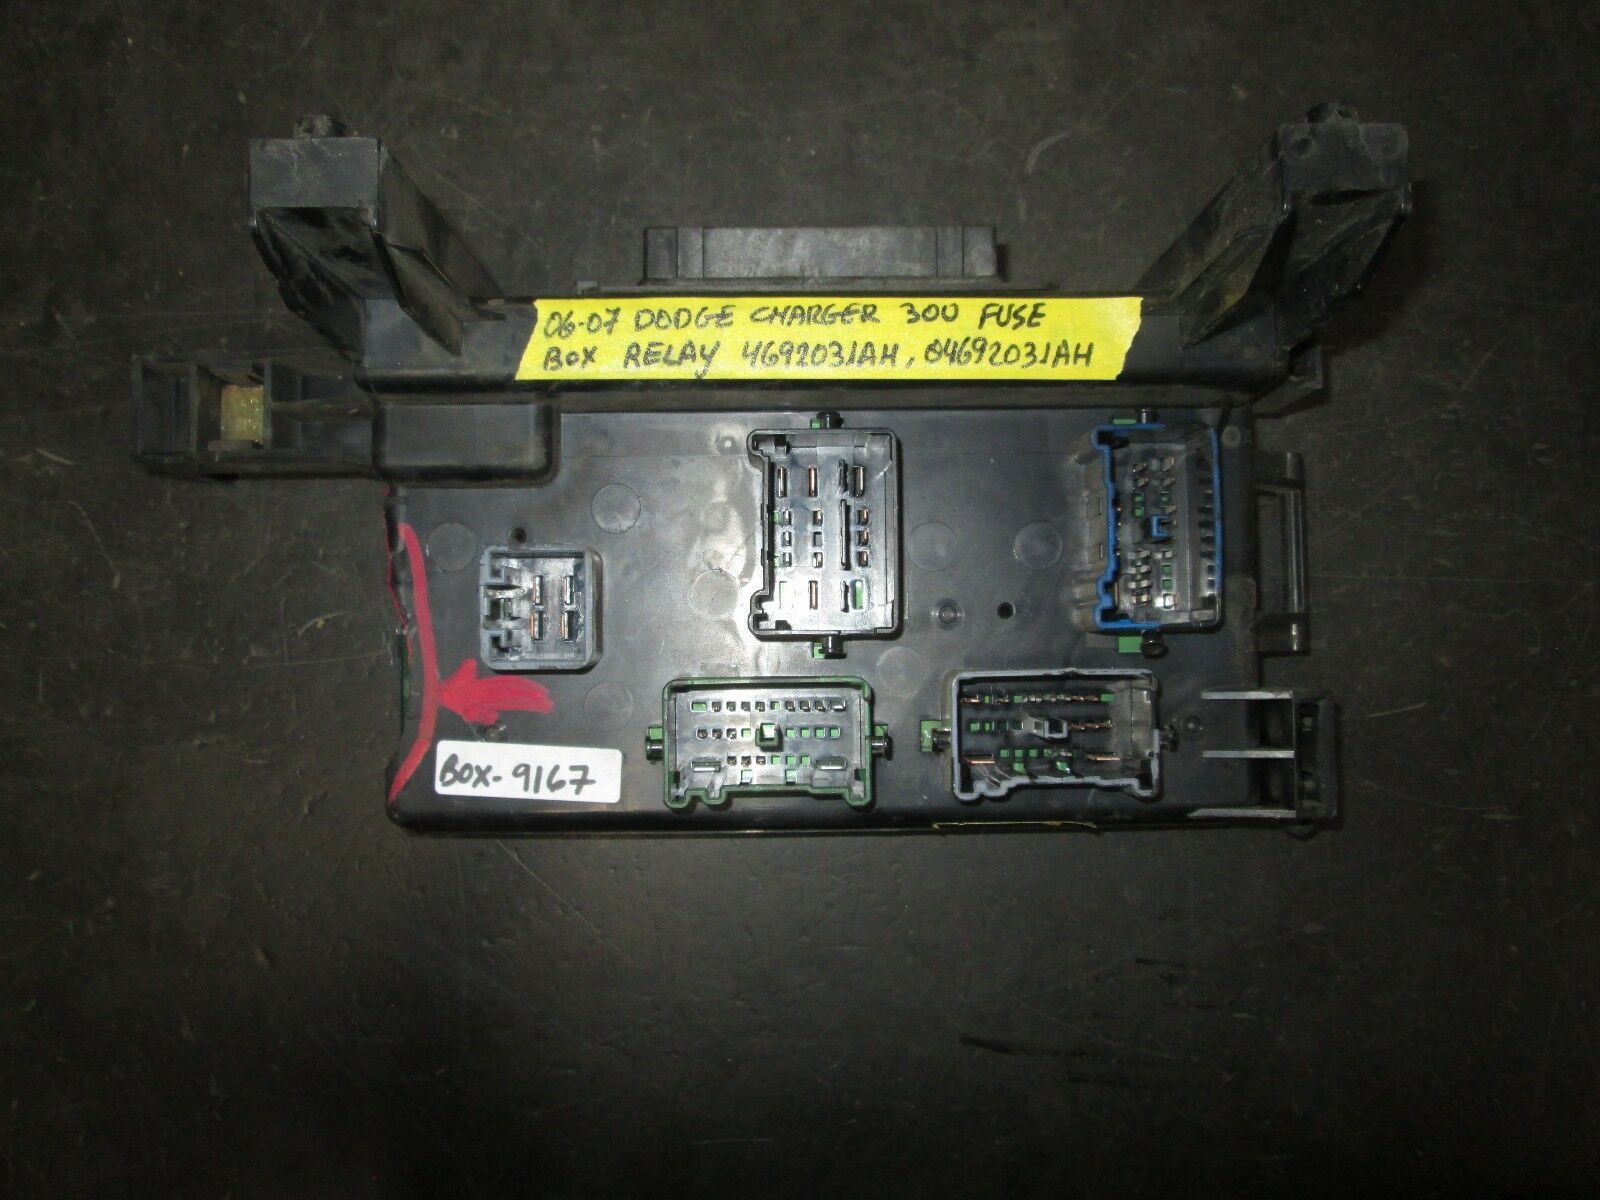 06 07 DODGE CHARGER 300 FUSE BOX RELAY #4692031AH,04692031AH *See item* 1  of 5Only 1 available See More